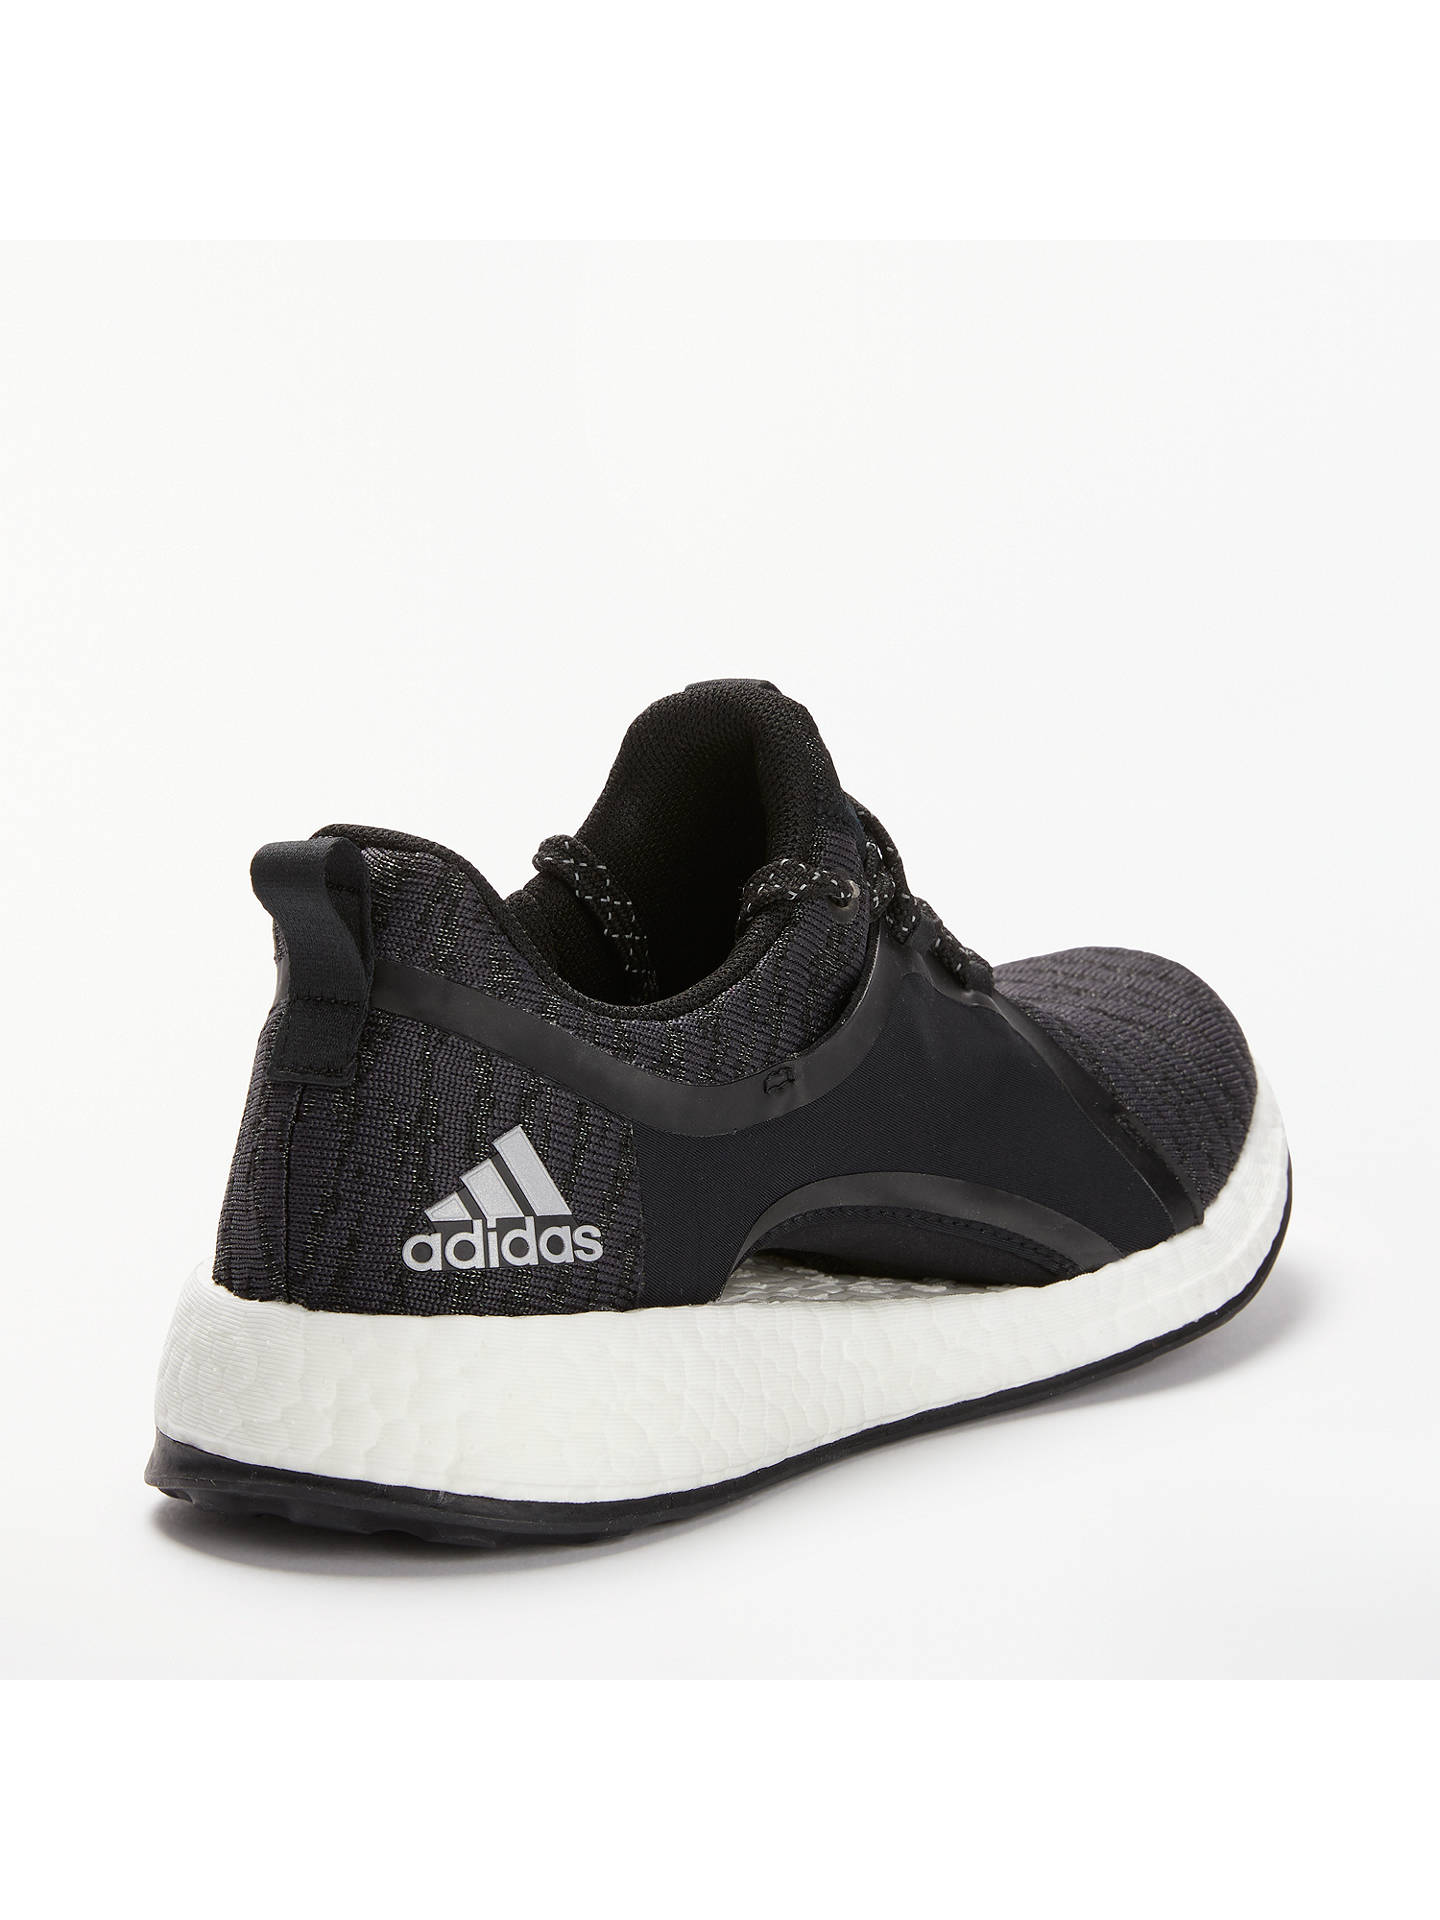 c163ad2d8 ... Buy adidas Pure Boost X Women s Running Shoes